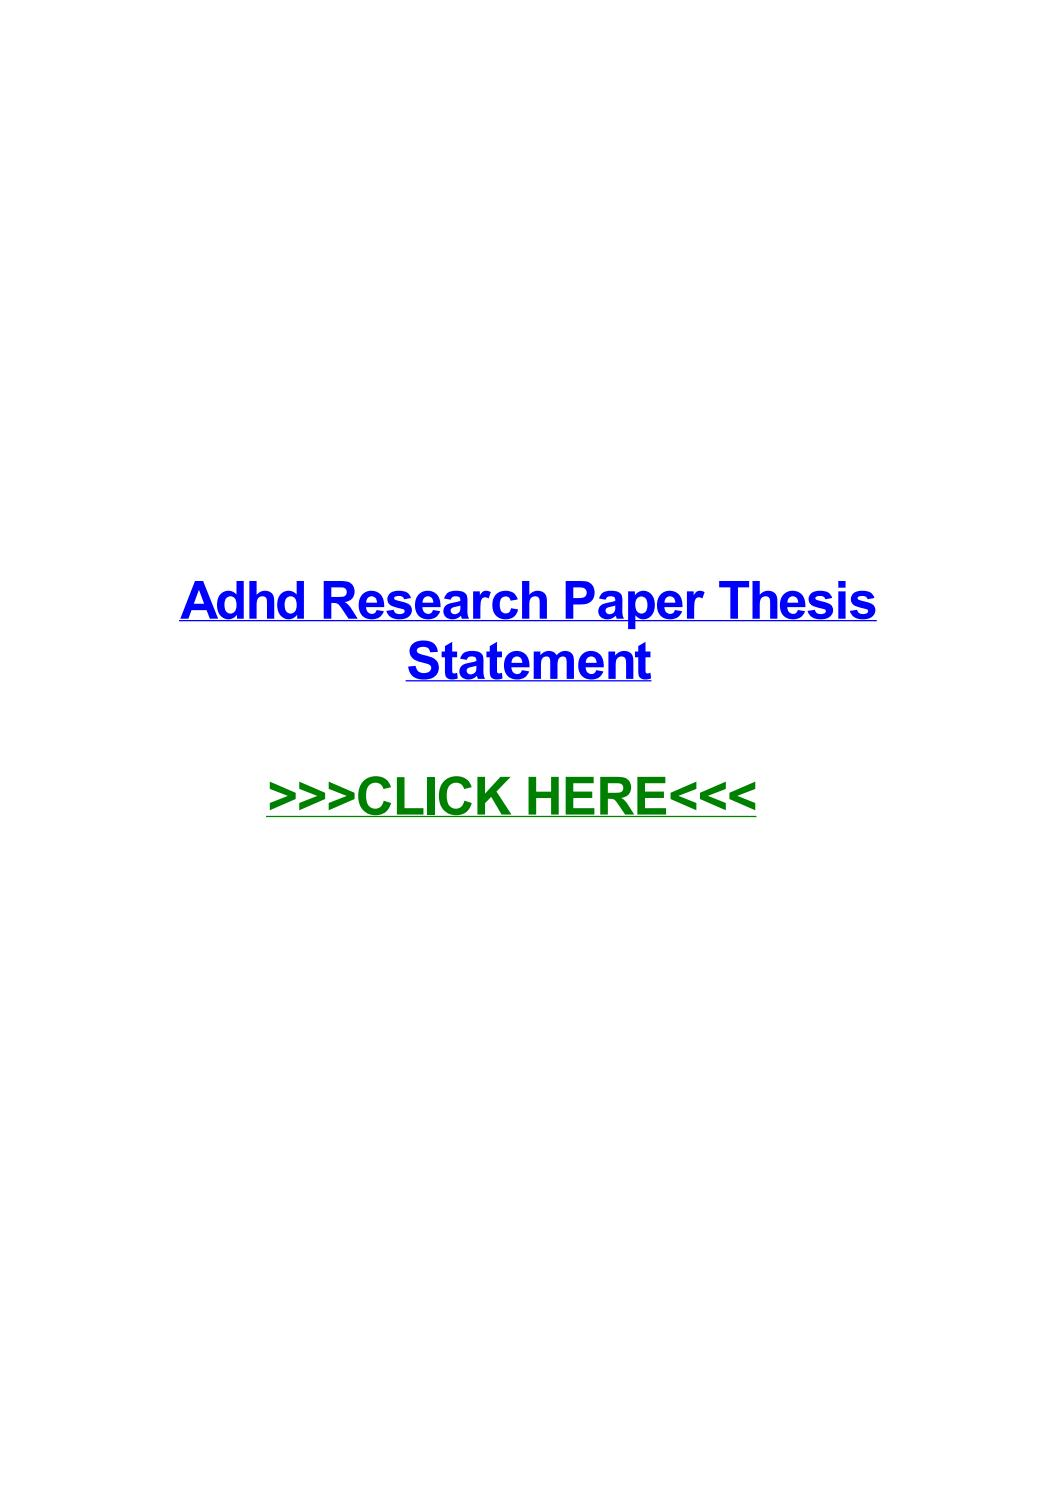 015 Research Paper Adhd Thesis Page 1 Formidable Statement Full